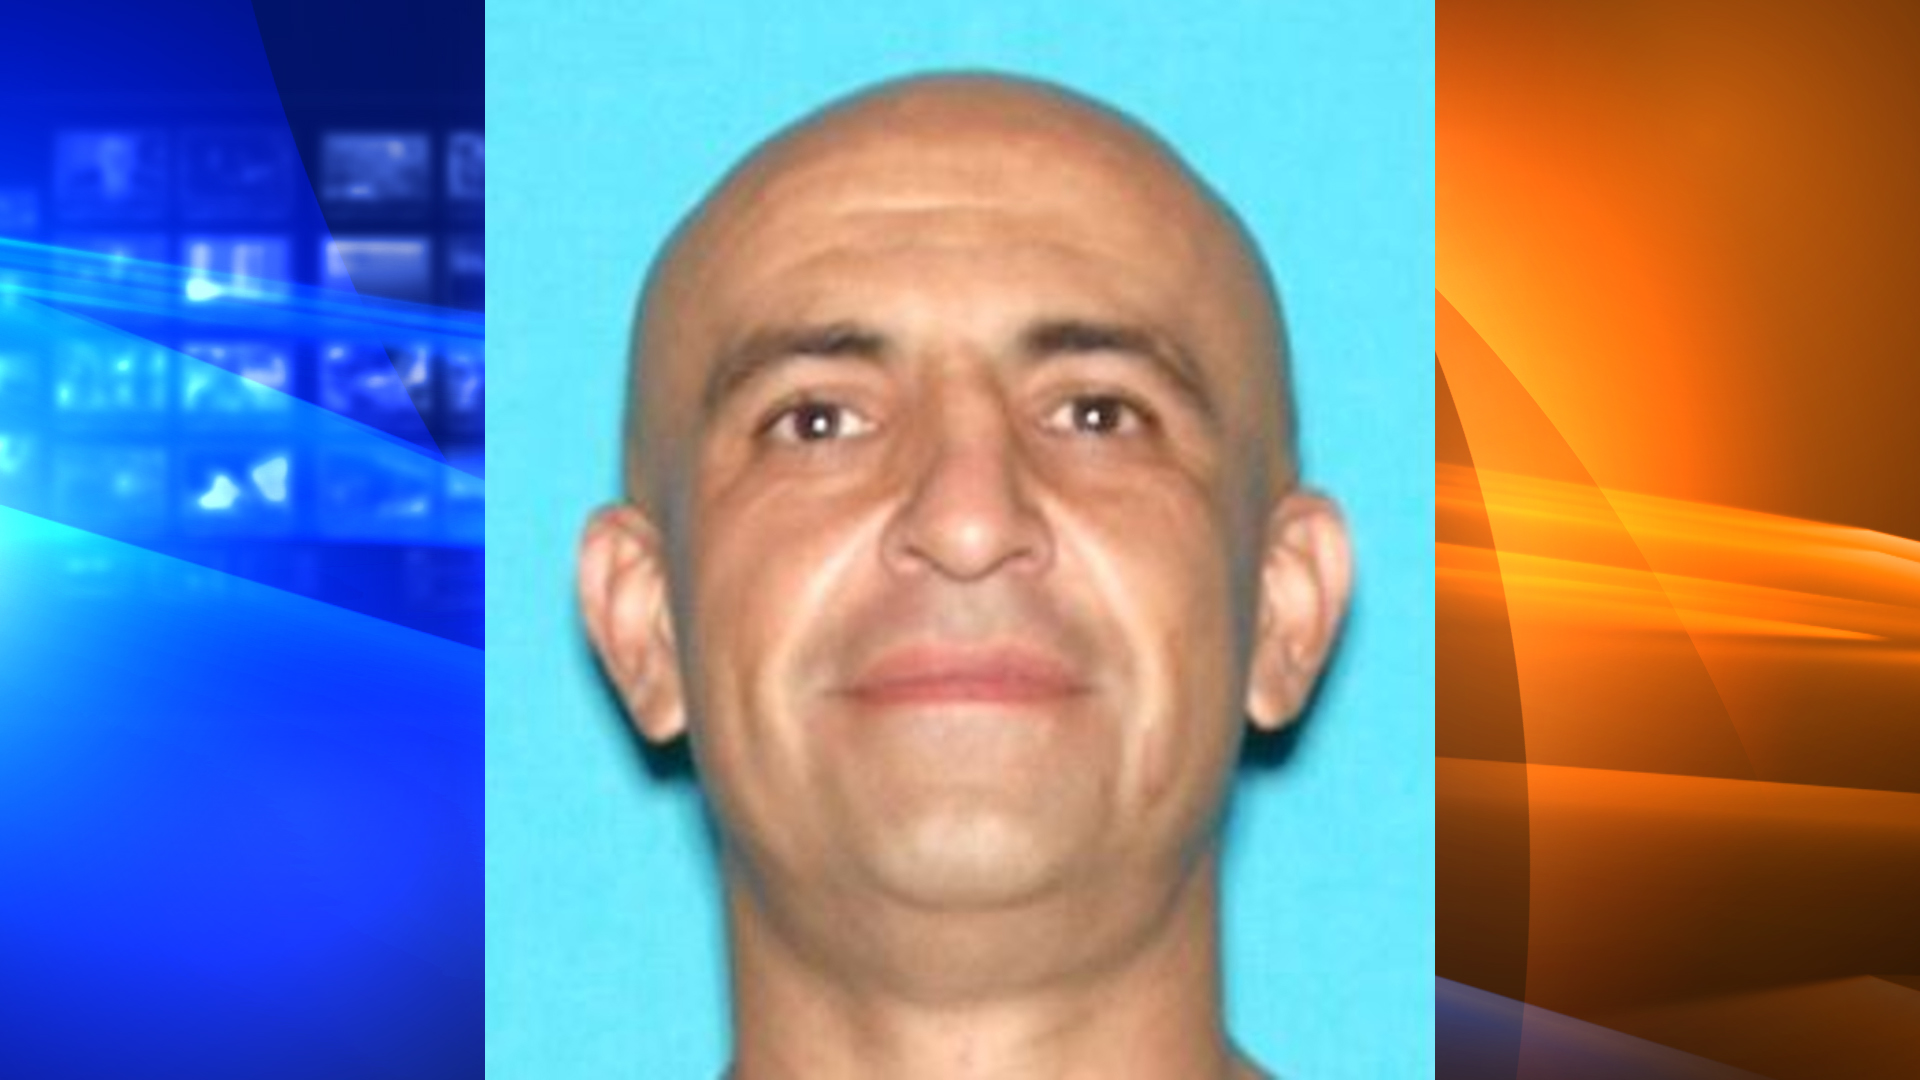 Nelson Fermin Garibay is shown in an undated photo released by the Los Angeles County Sheriff's Department on Jan. 12, 2021.